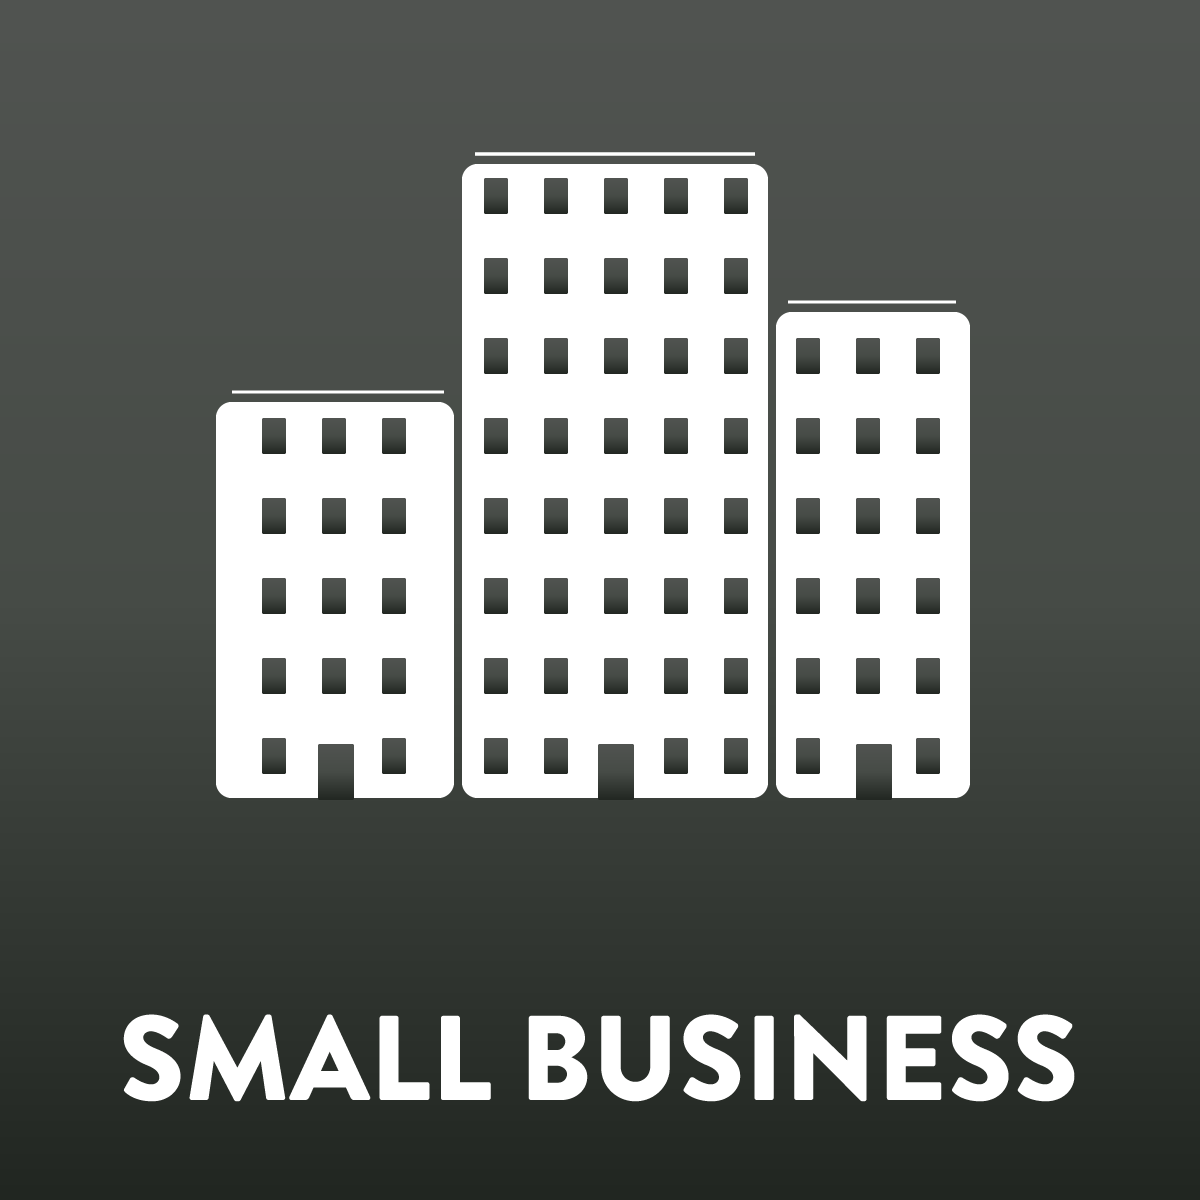 Marketing for Small Businesses (SME) and Growing Companies